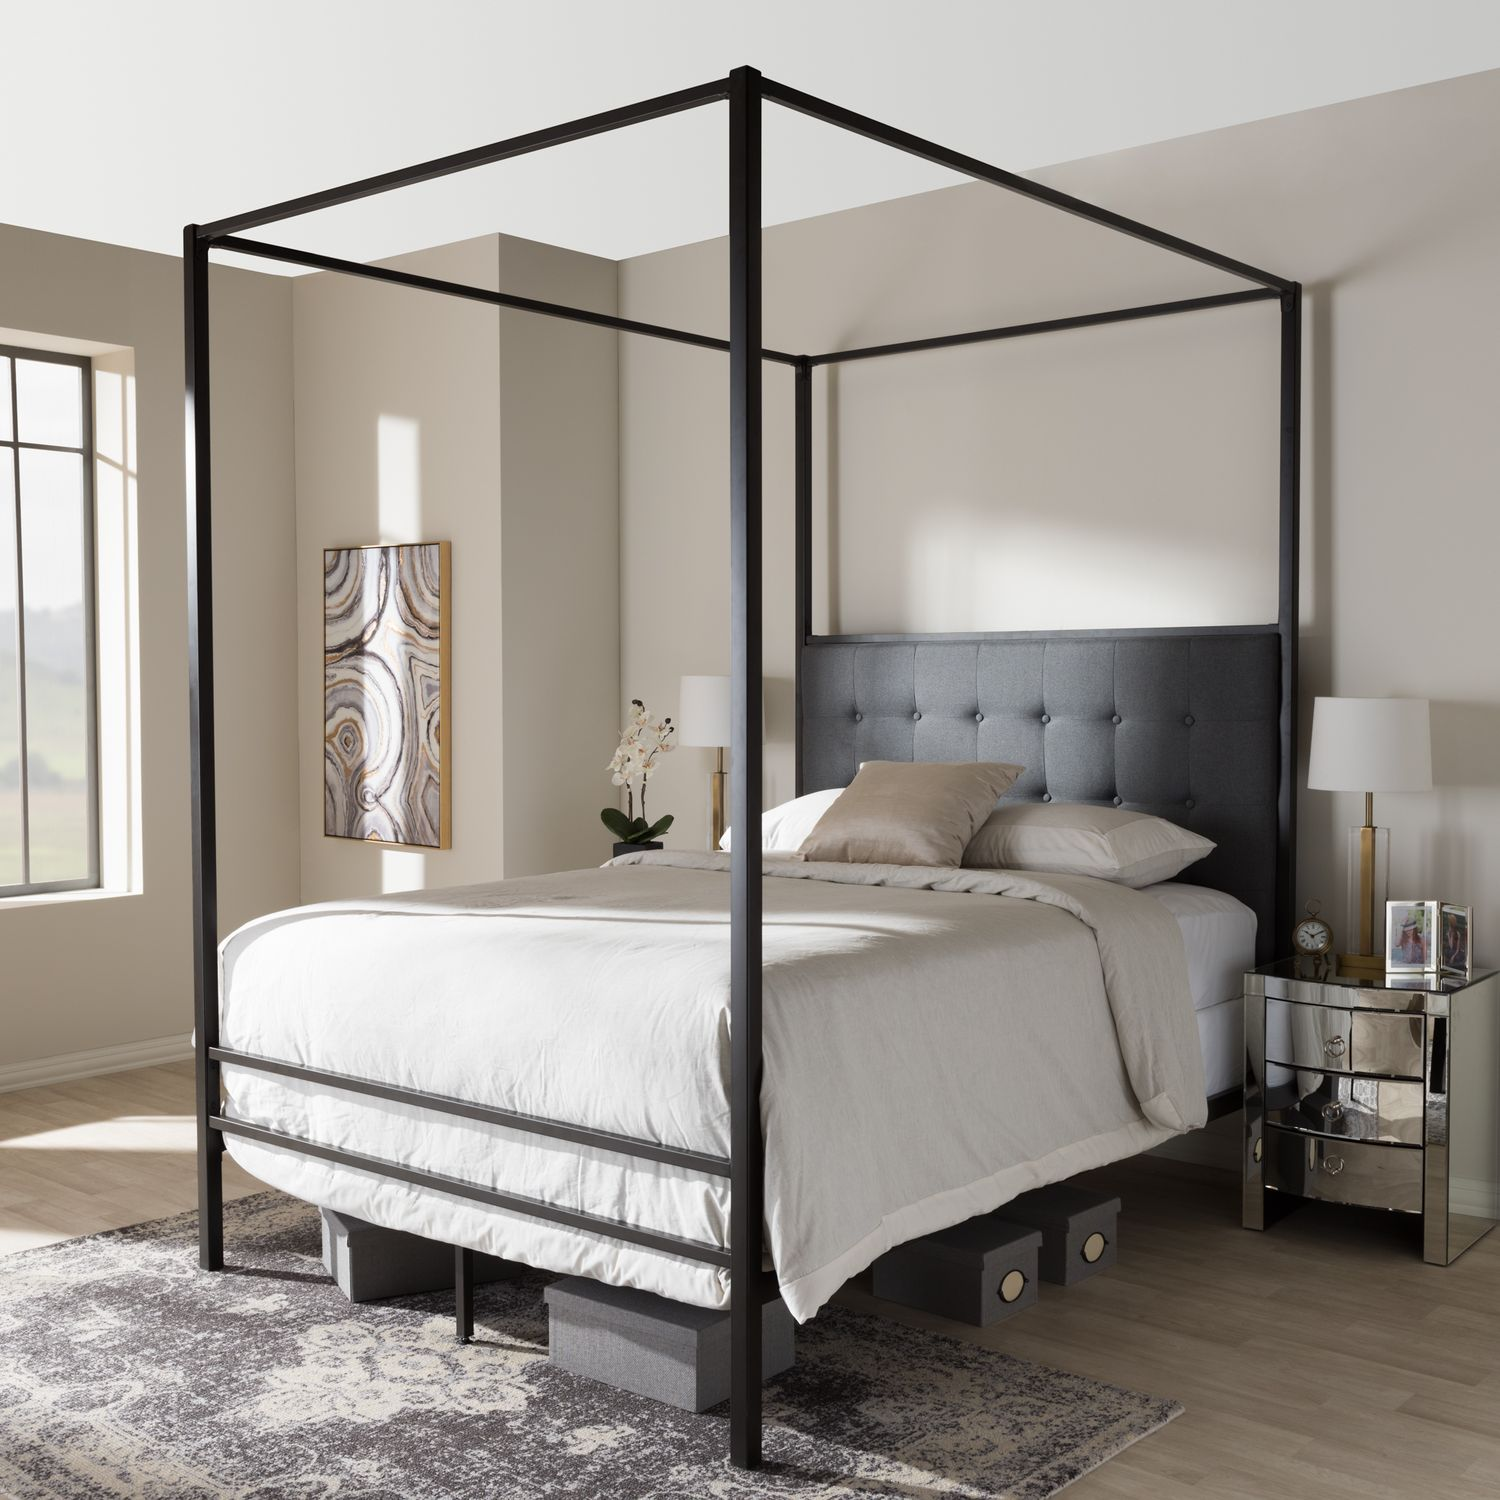 Baxton Studio Eleanor Canopy Queen Bed : canopy-bed-studio-apartment - designwebi.com